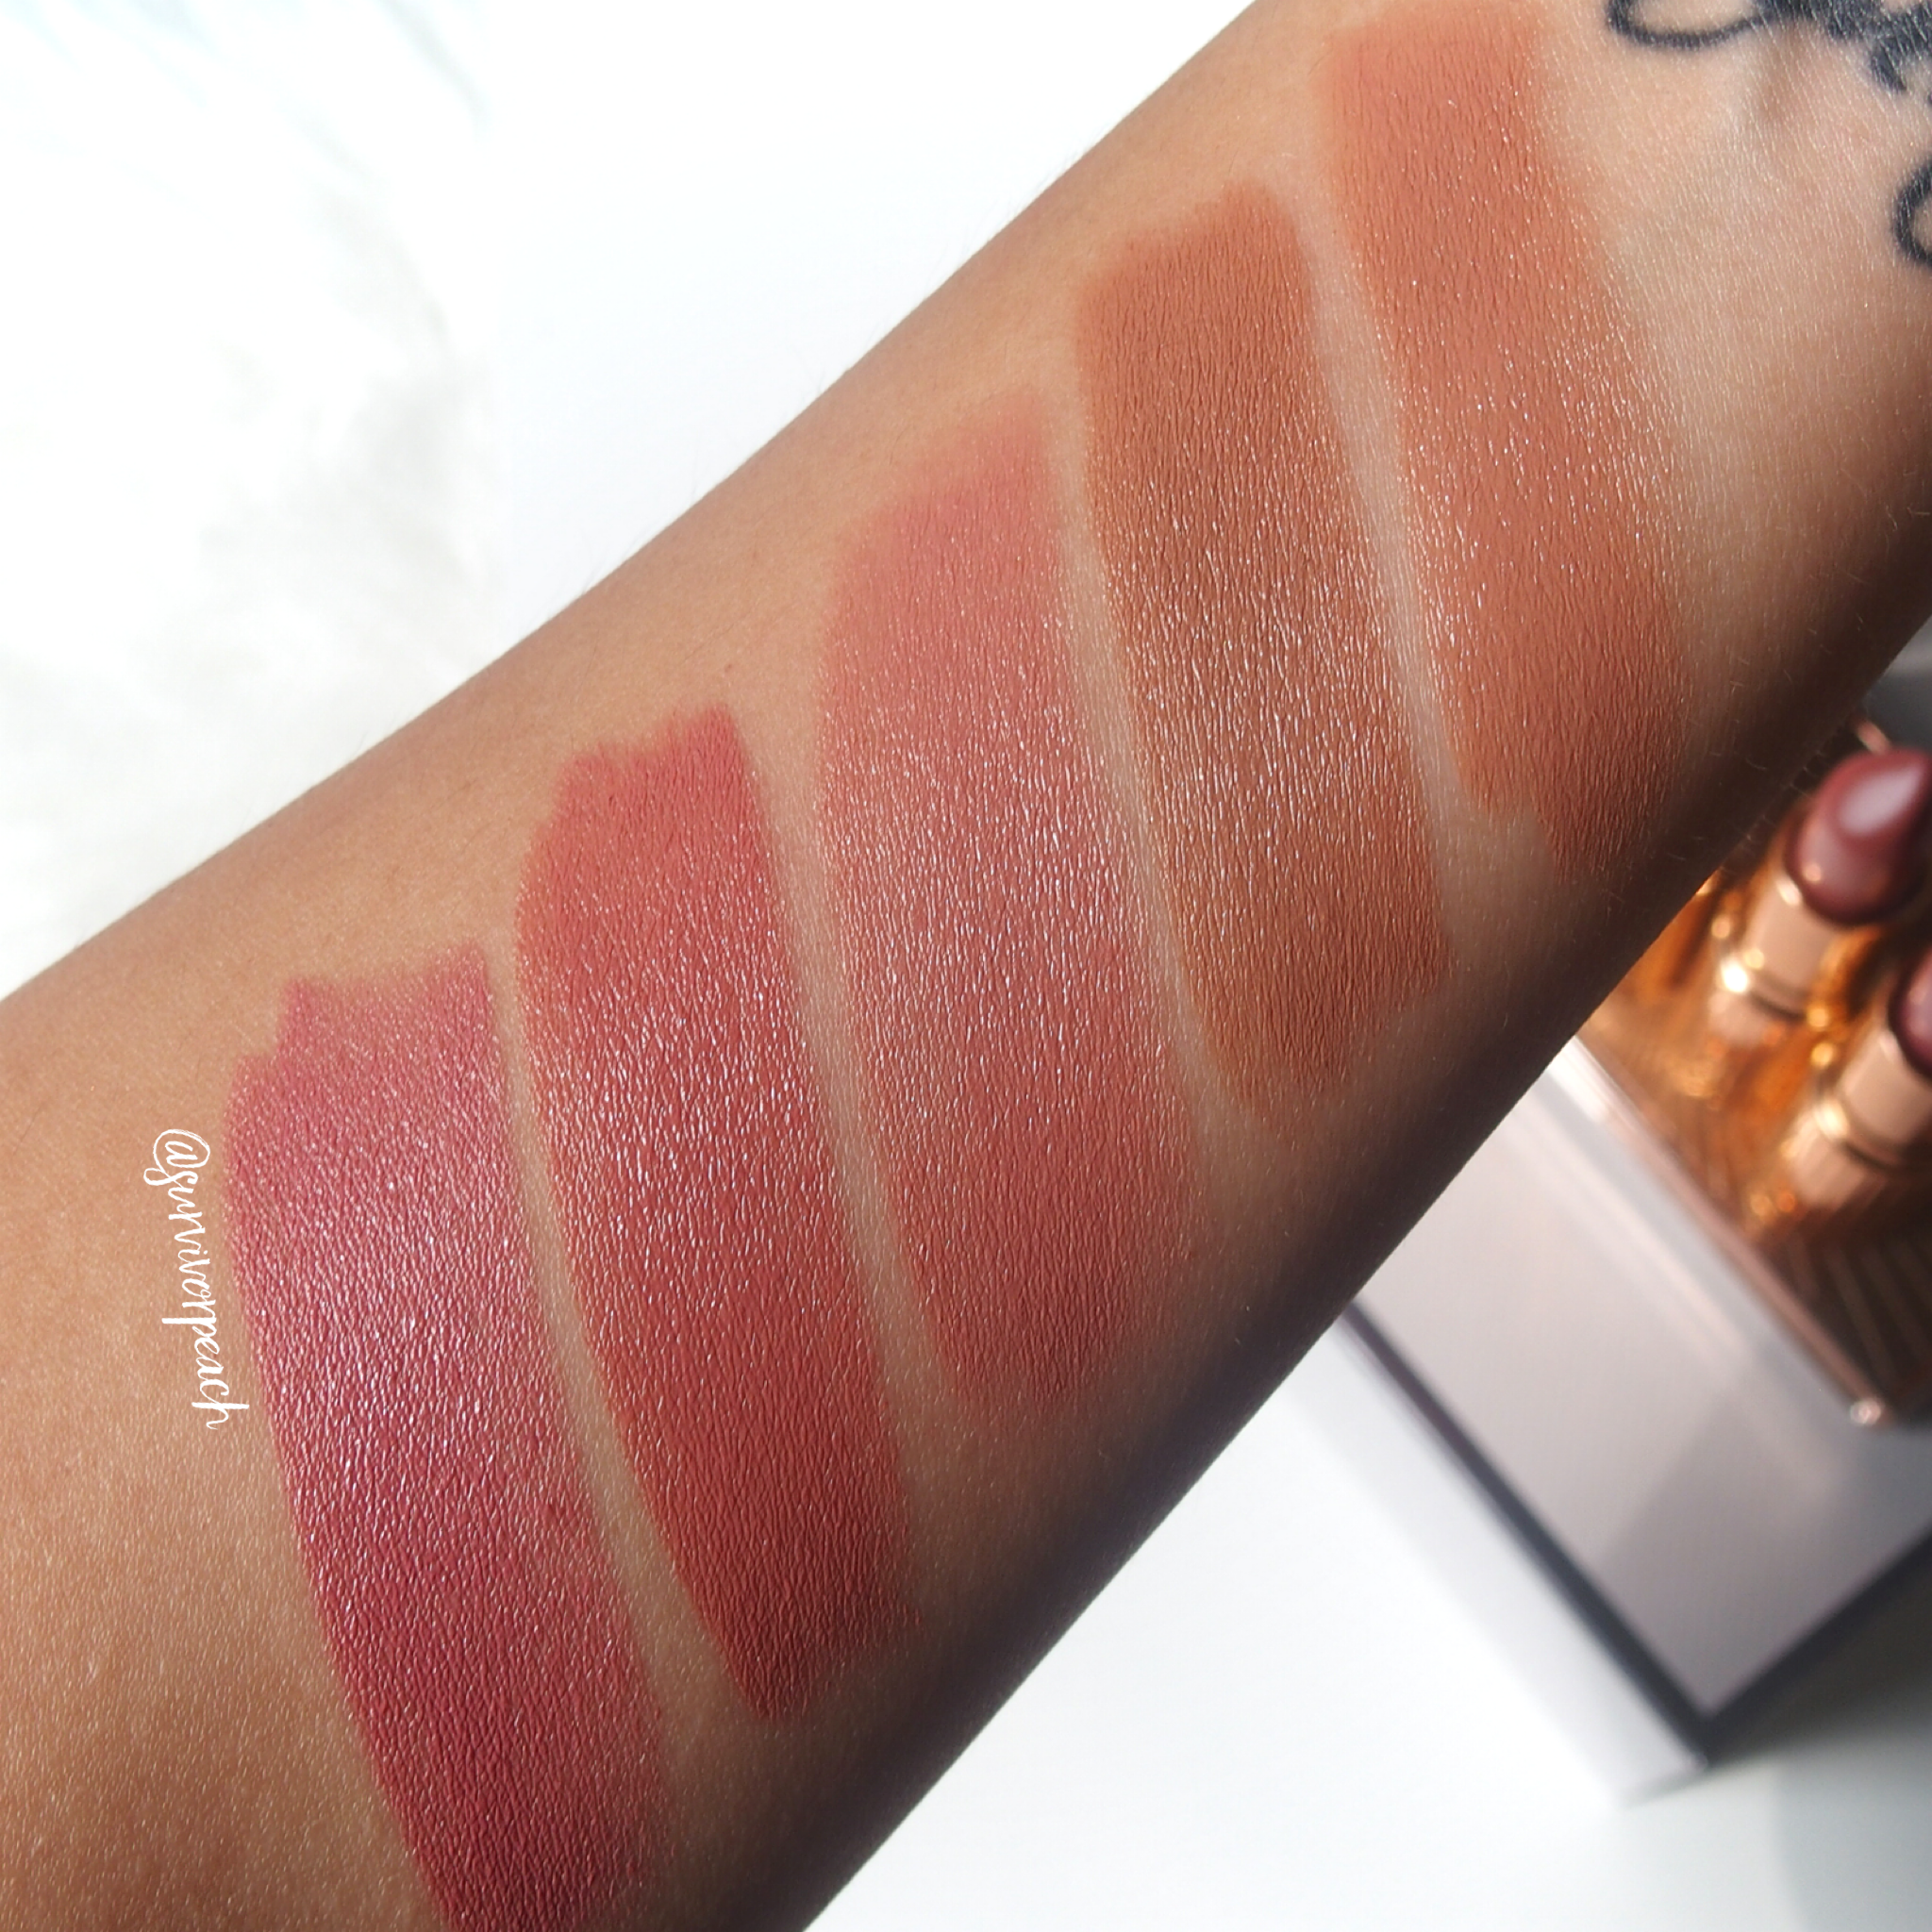 Swatches of the Charlotte Tilbury K.I.S.S.I.N.G Lipsticks in shades Penelope Pink, Hepburn Honey, Bitch Perfect, American Sweetheart, The Duchess